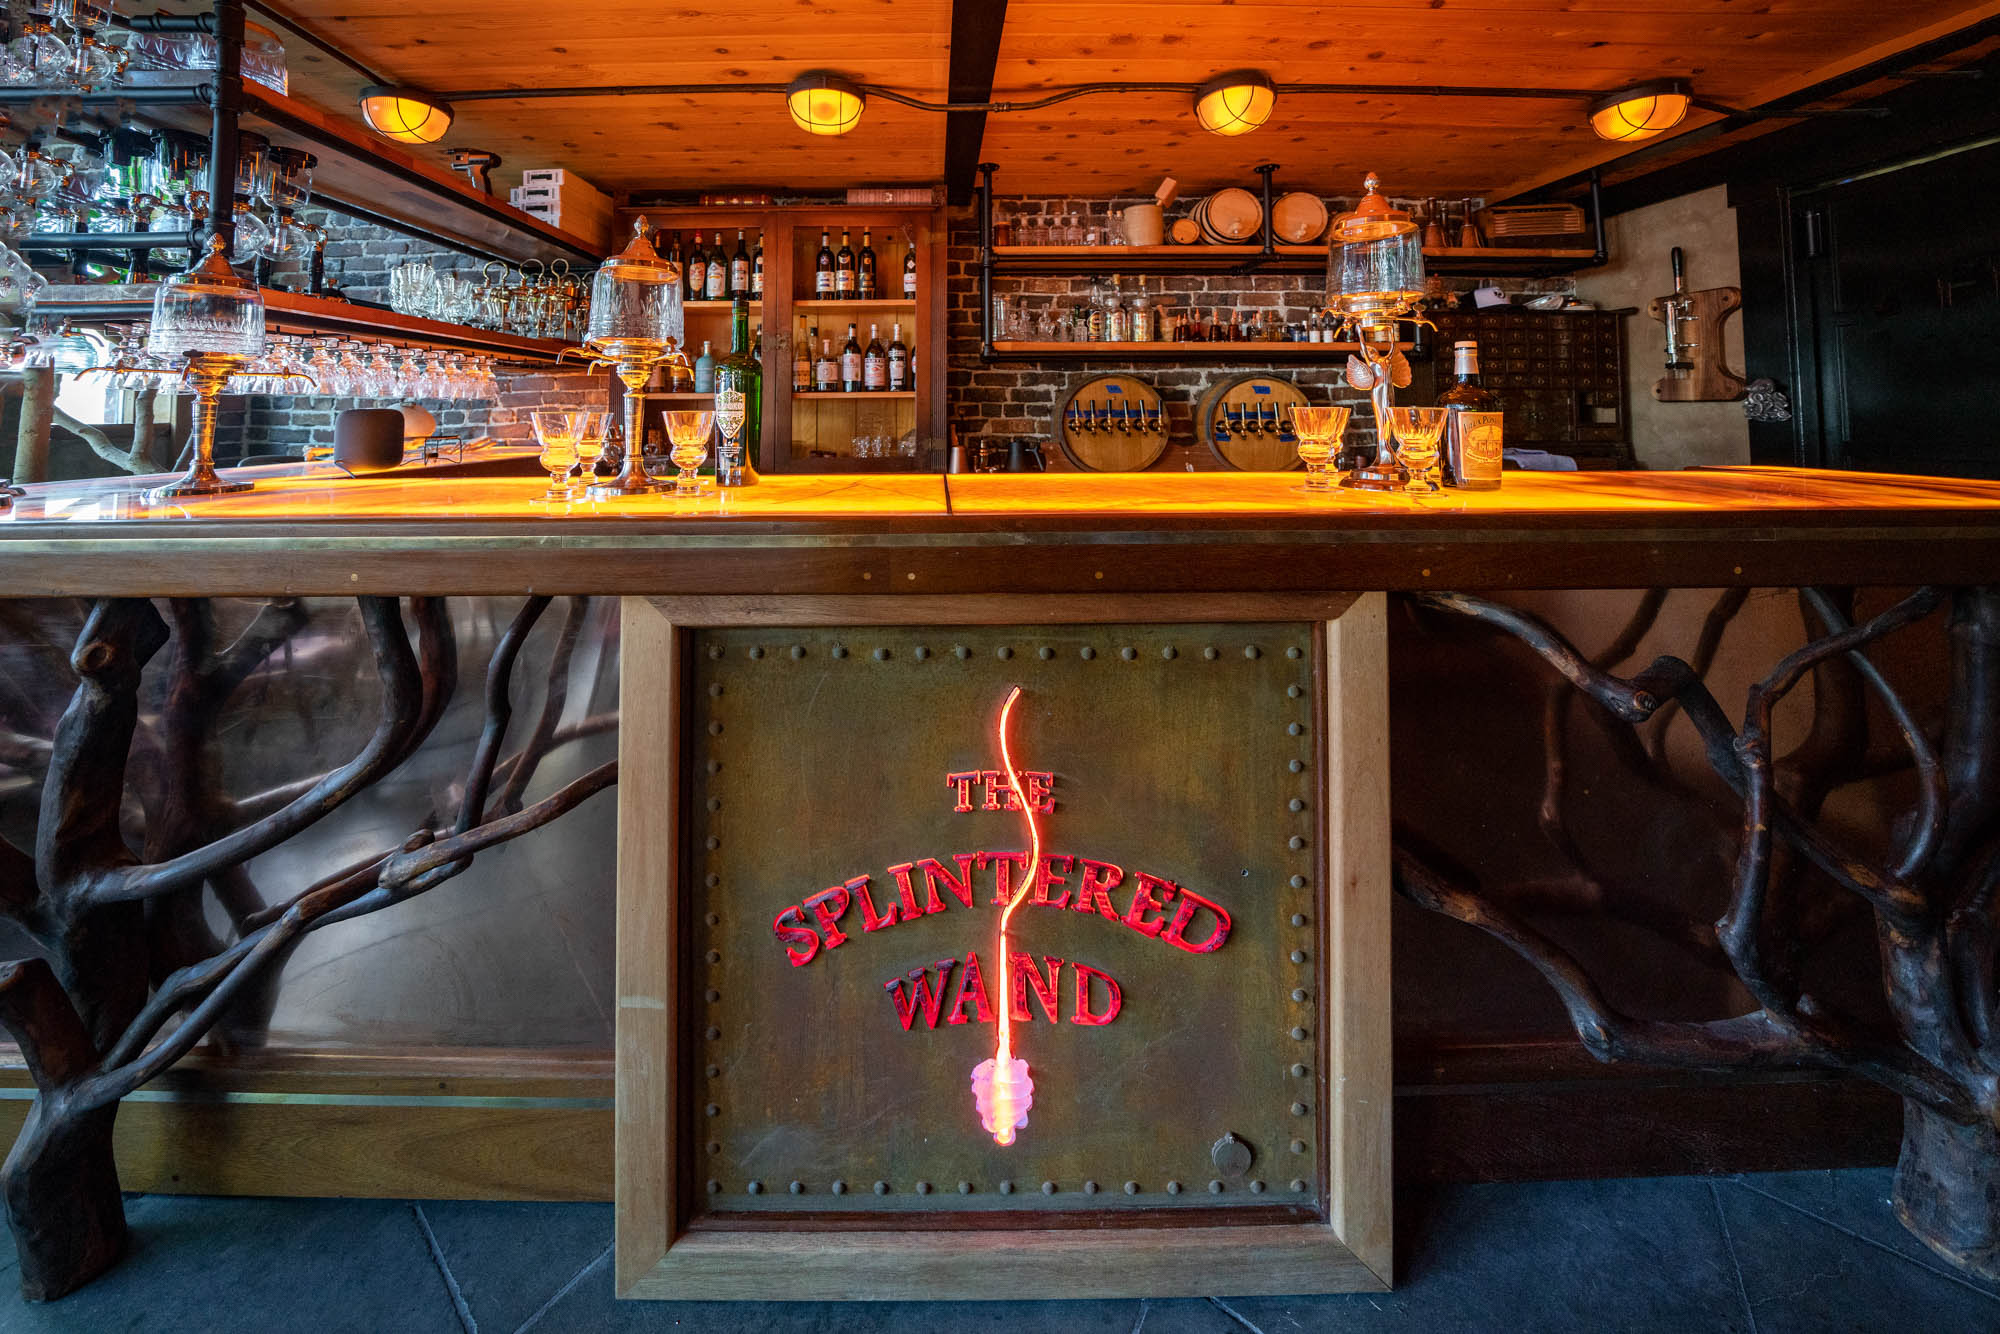 """A bar lit with soft orange overhead lamps, decorated with a sign that says """"The Splintered Wand"""" in glowing red letters and branches of a plant snaking below."""